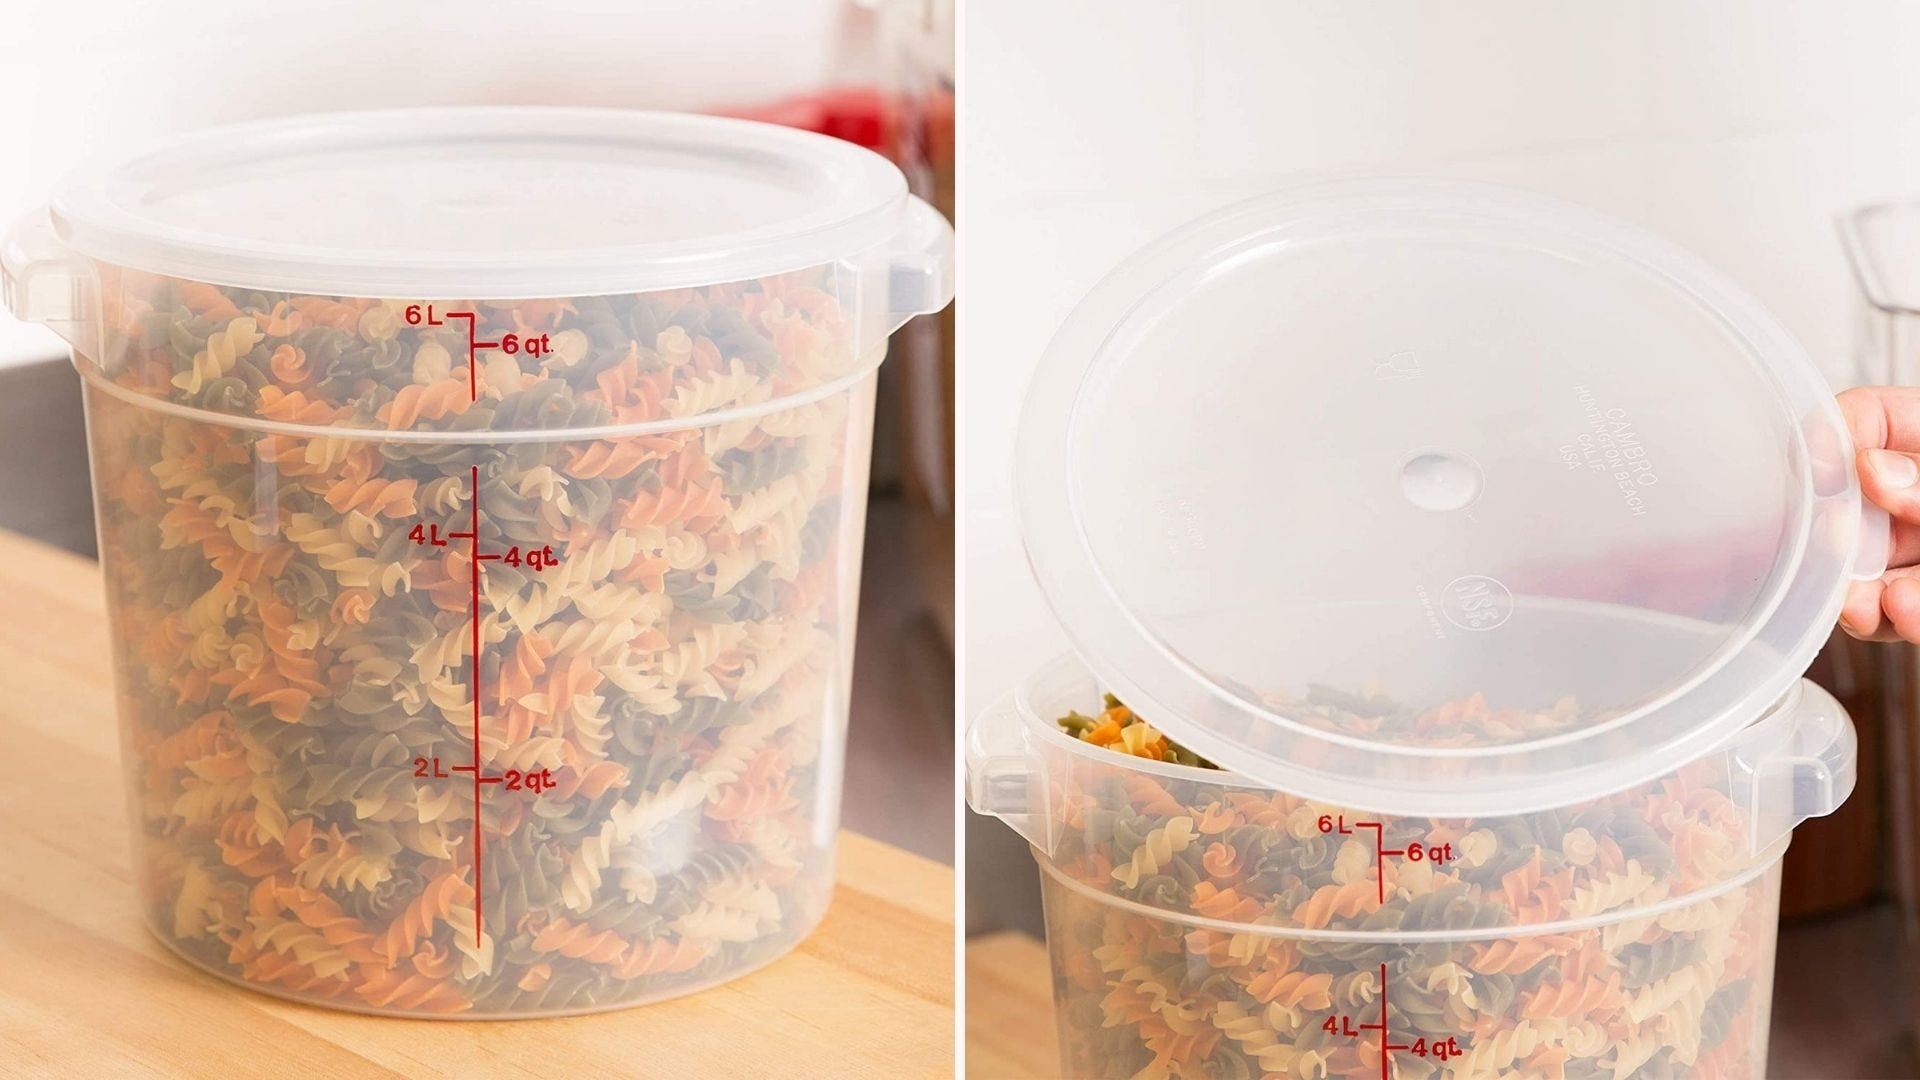 A clear plastic container filled with dry pasta